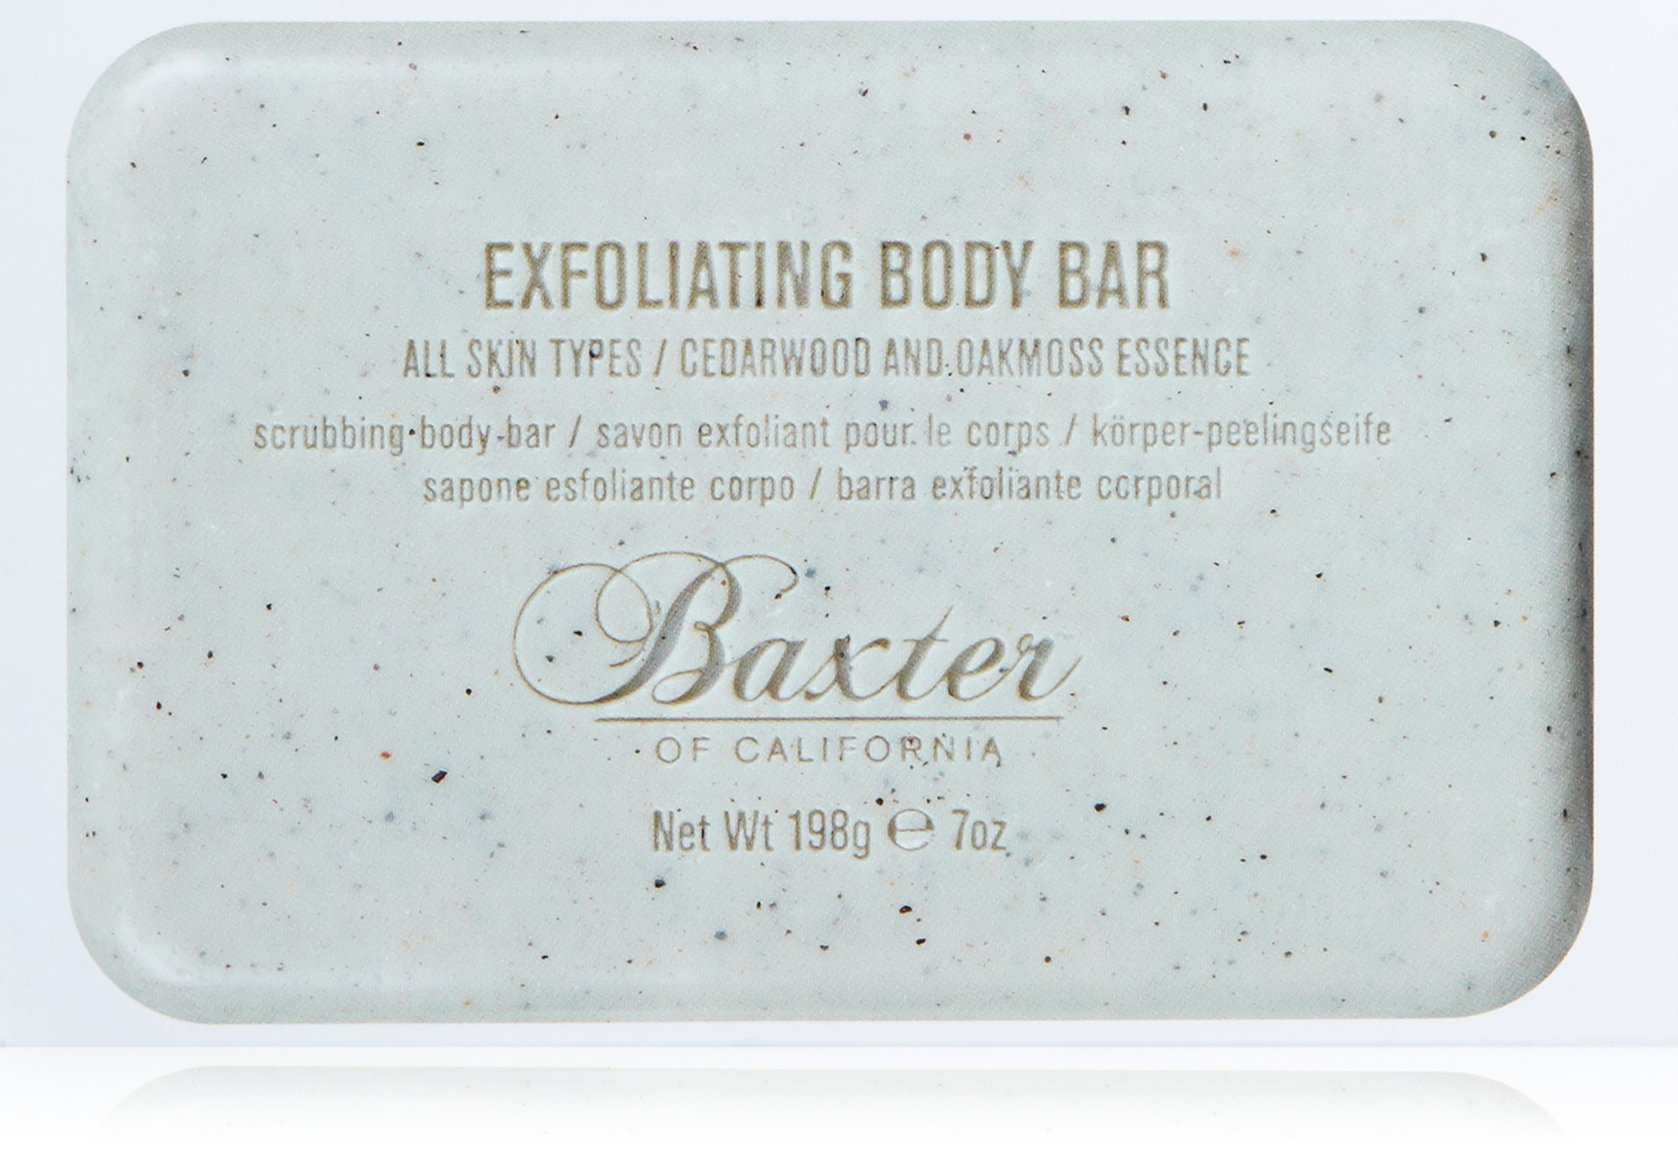 Baxter of California Men's Exfoliating Body Bar Soap, Cedarwood and Oak Moss Essence, 7 oz by Baxter of California